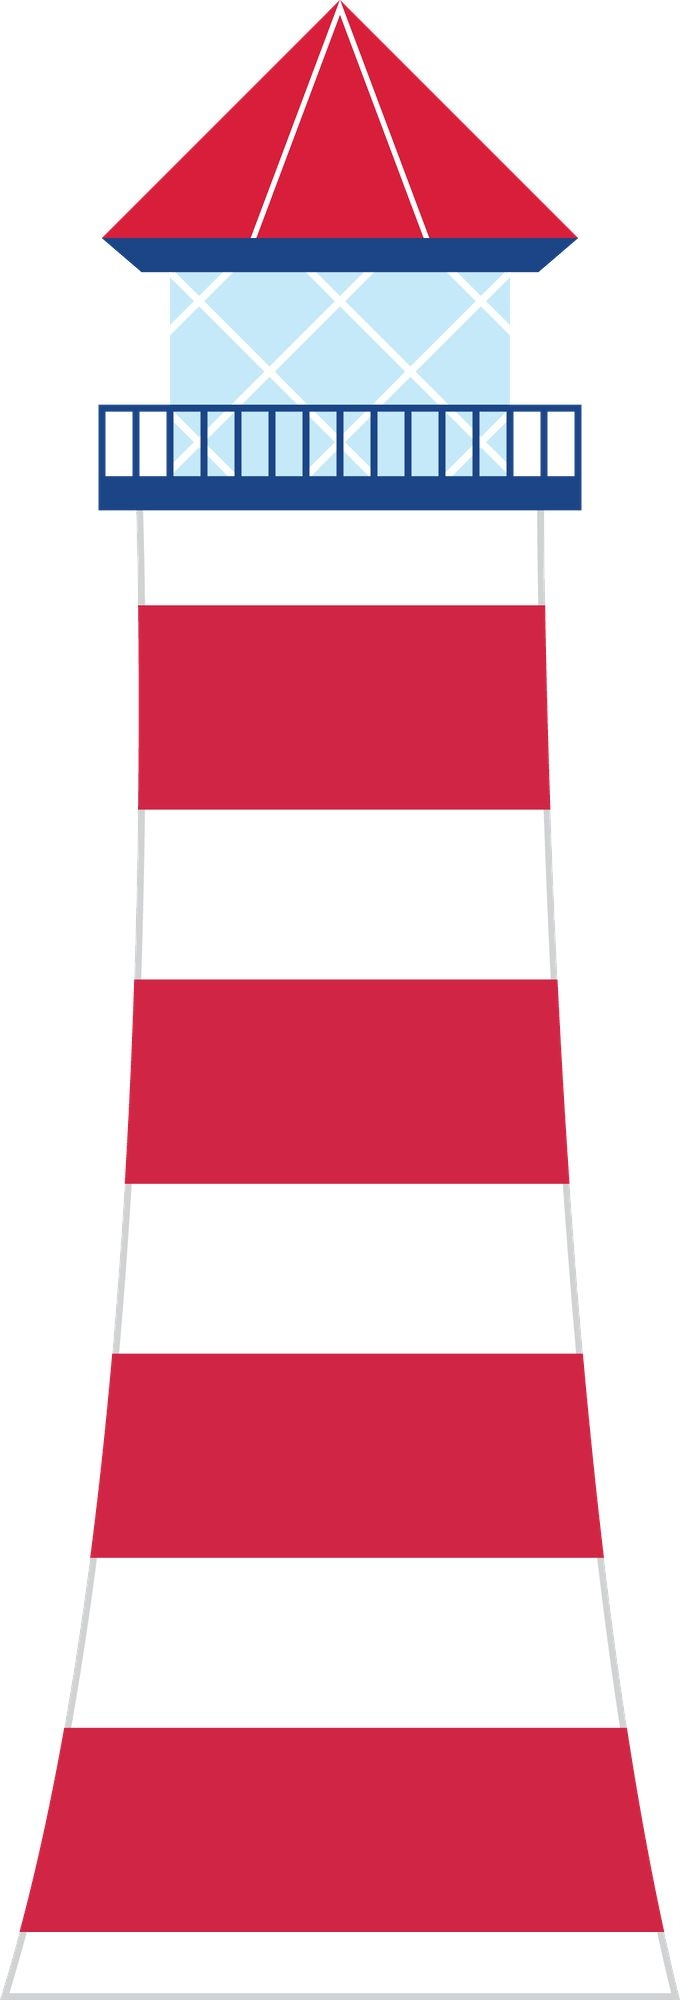 Free Lighthouse Clipart Images